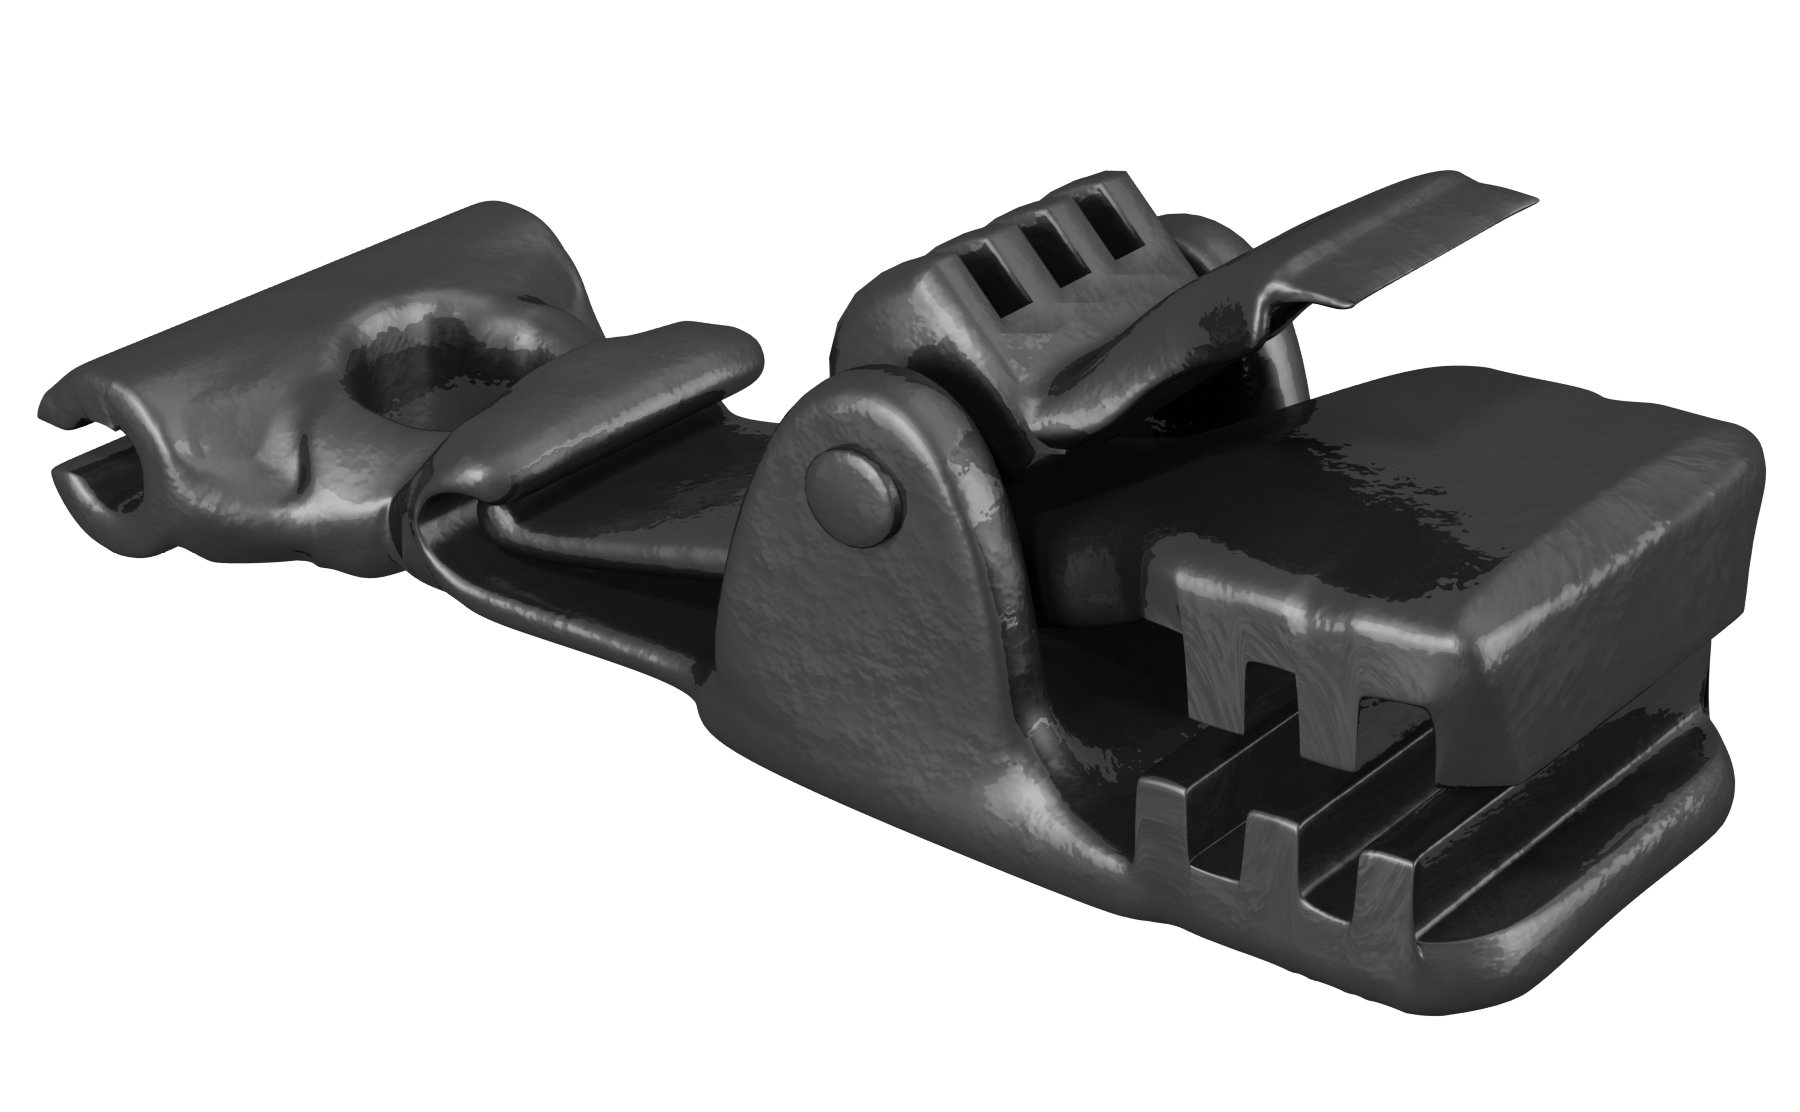 The Dirty Gardener Universal Heavy Duty Locking Jaws Clip/Tarp Clamp - 12 Count by The Dirty Gardener